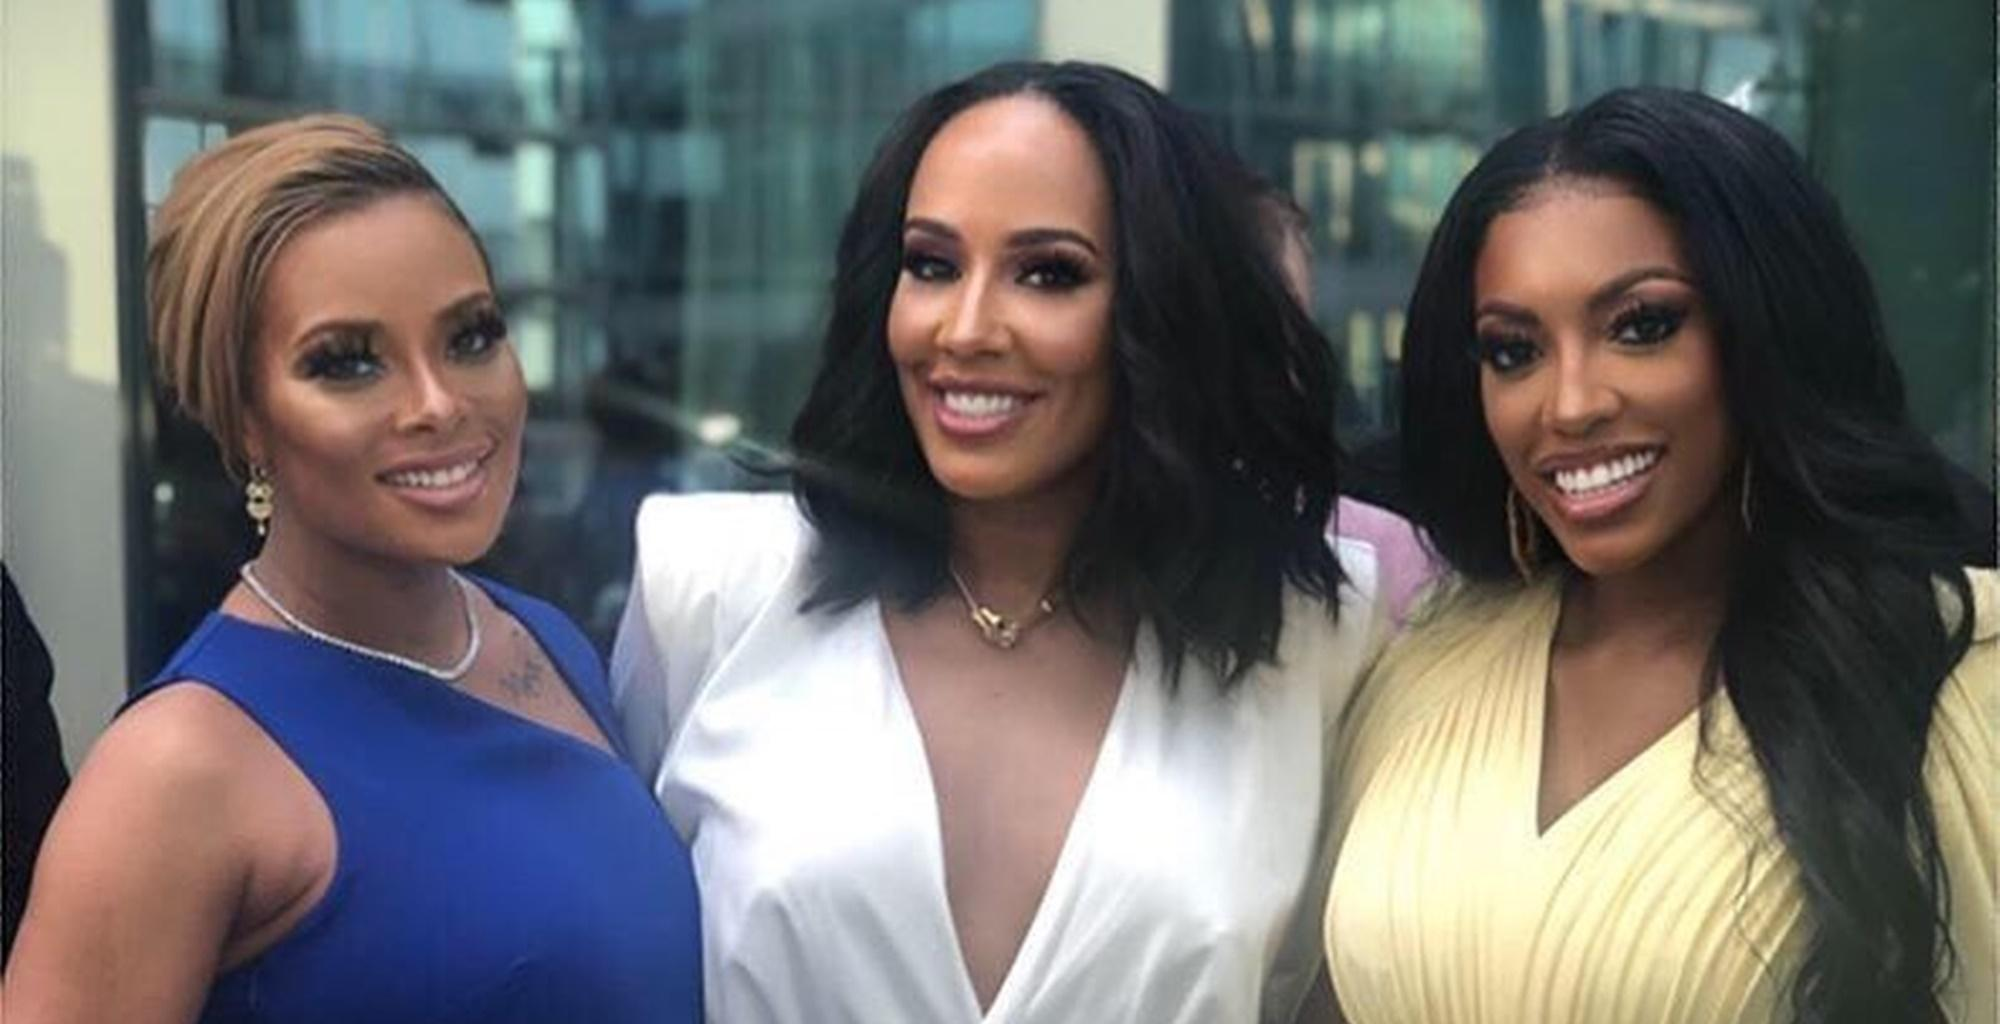 Porsha Williams And Eva Marcille Enjoy Date Night In Cute Picture -- Here Is Why Dennis McKinley Stole The Show For 'RHOA' Fans